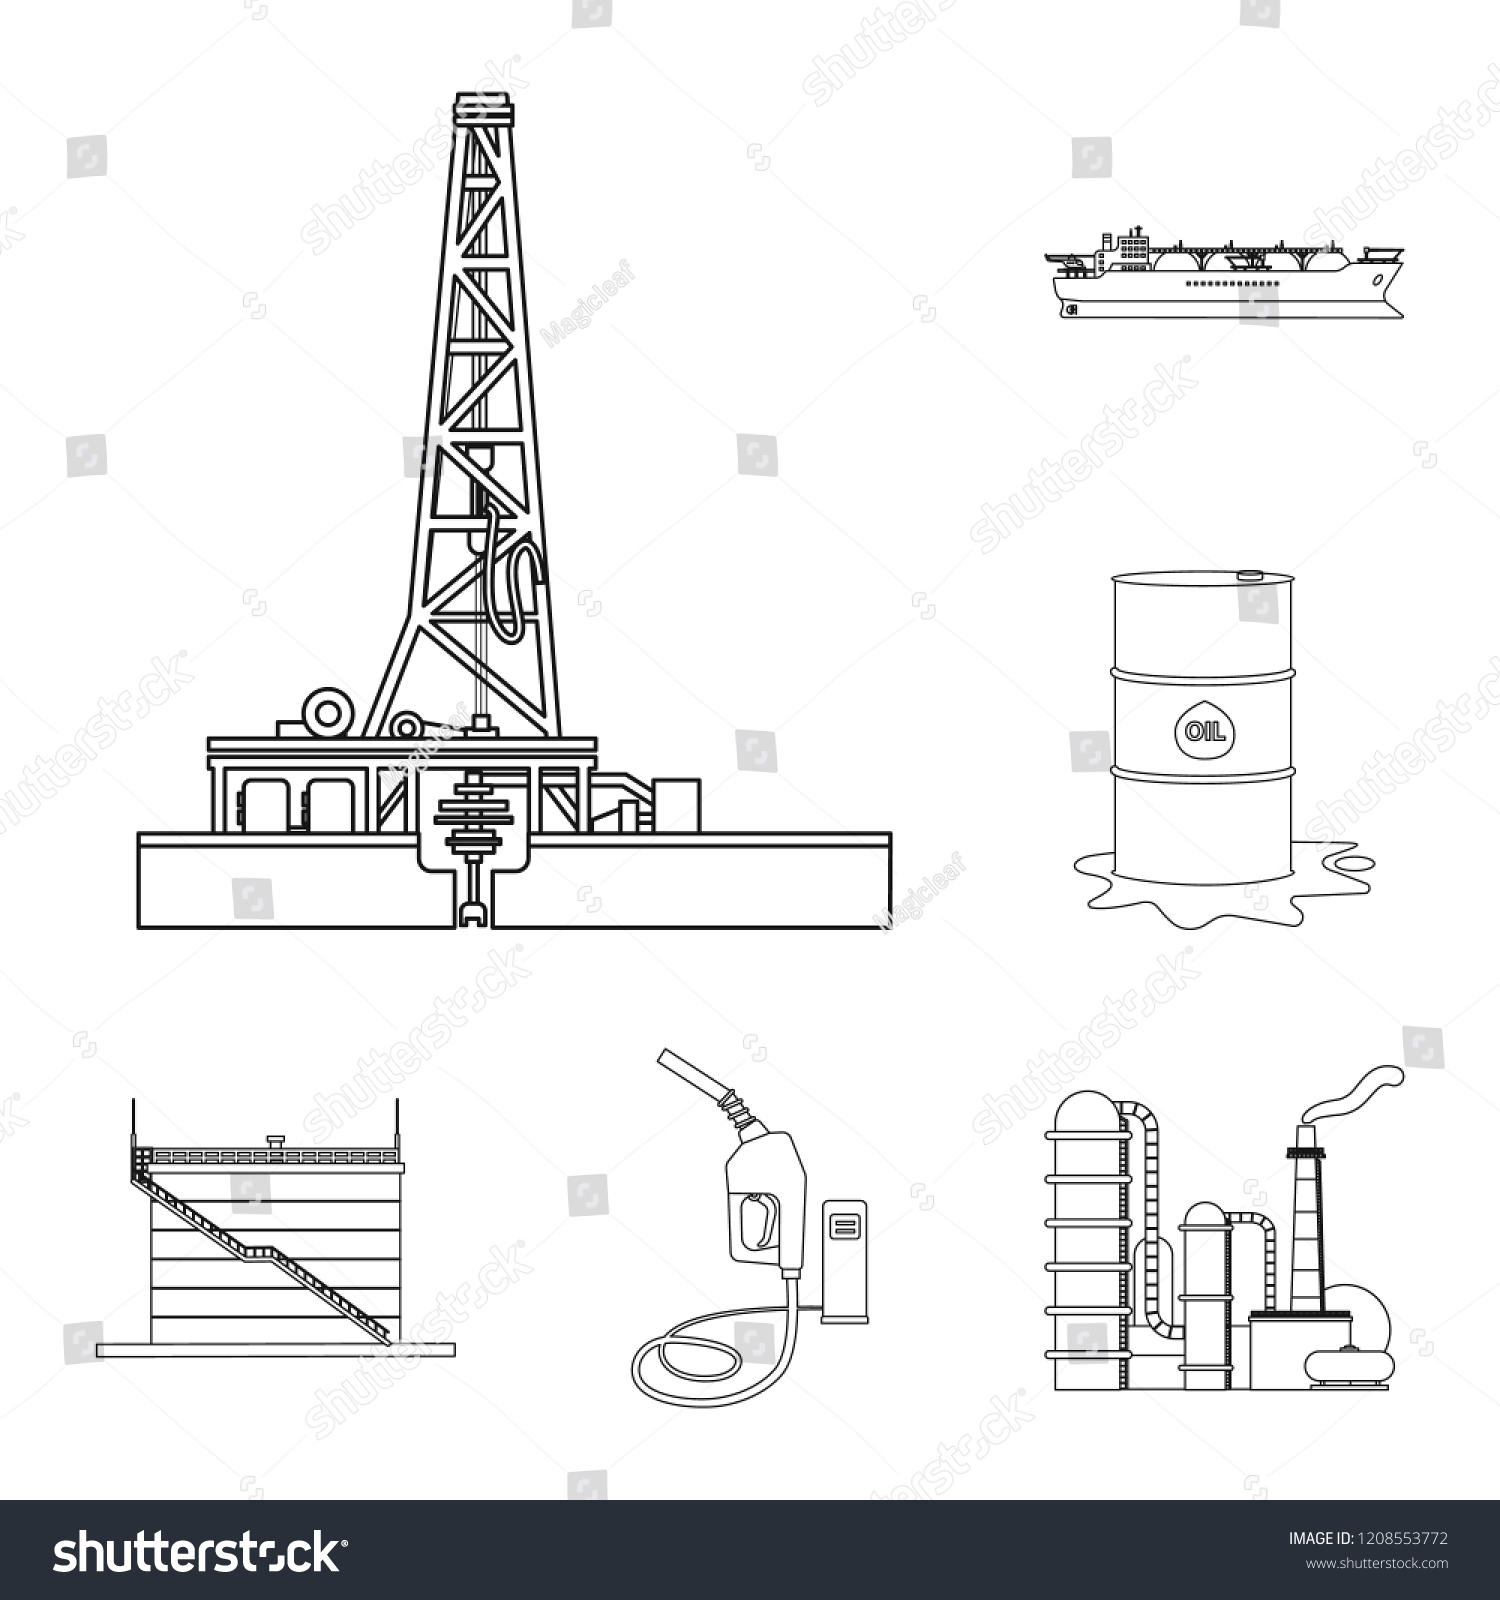 hight resolution of  royalty free rh shutterstock com vector design oil gas icon set stock vector royalty free rh shutterstock com icon oil barge schematic vector design